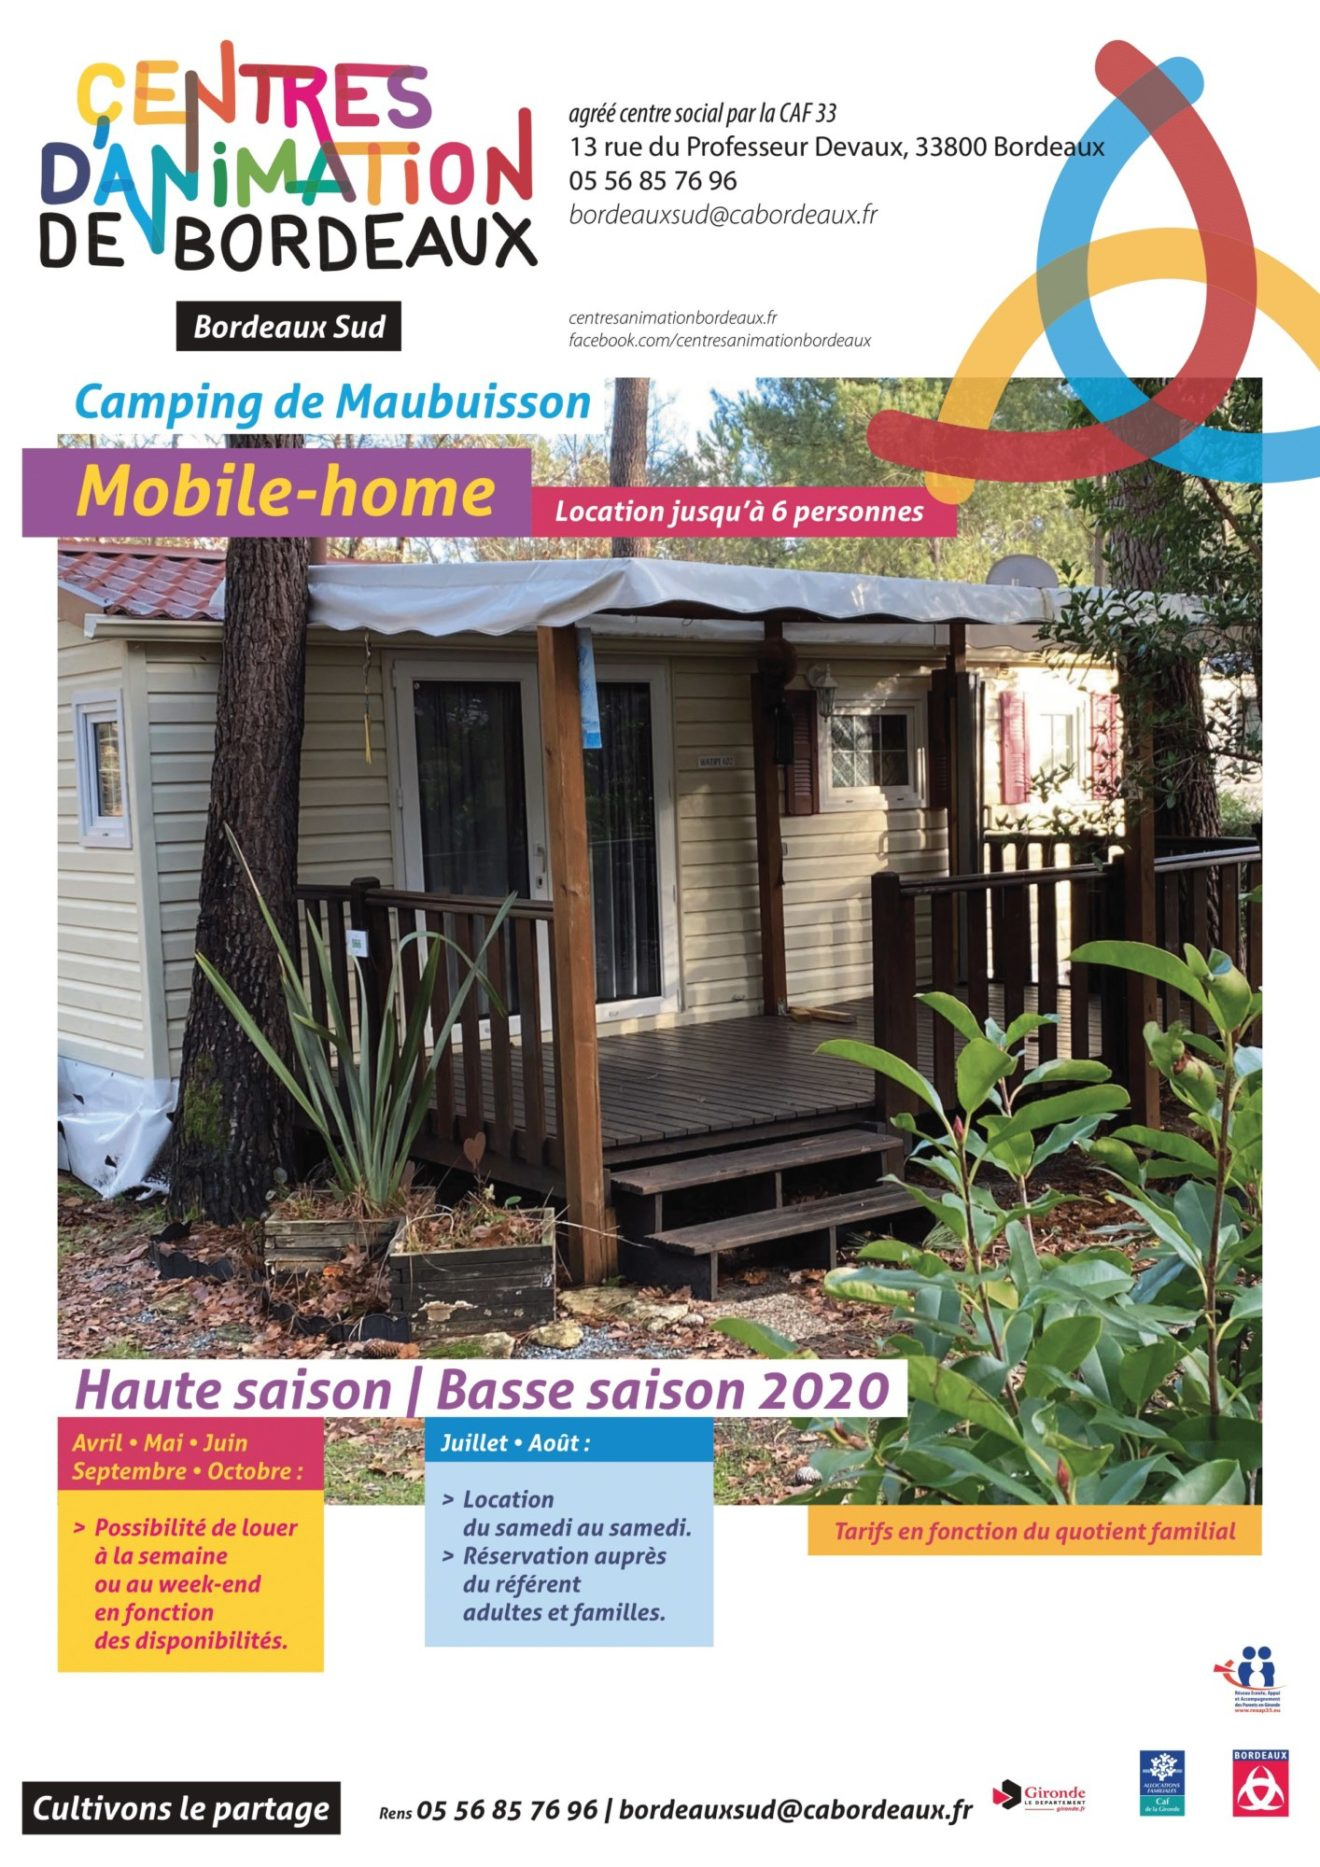 Bx SUD mobilhome adultes_familles avril_oct 2020 A3a-1